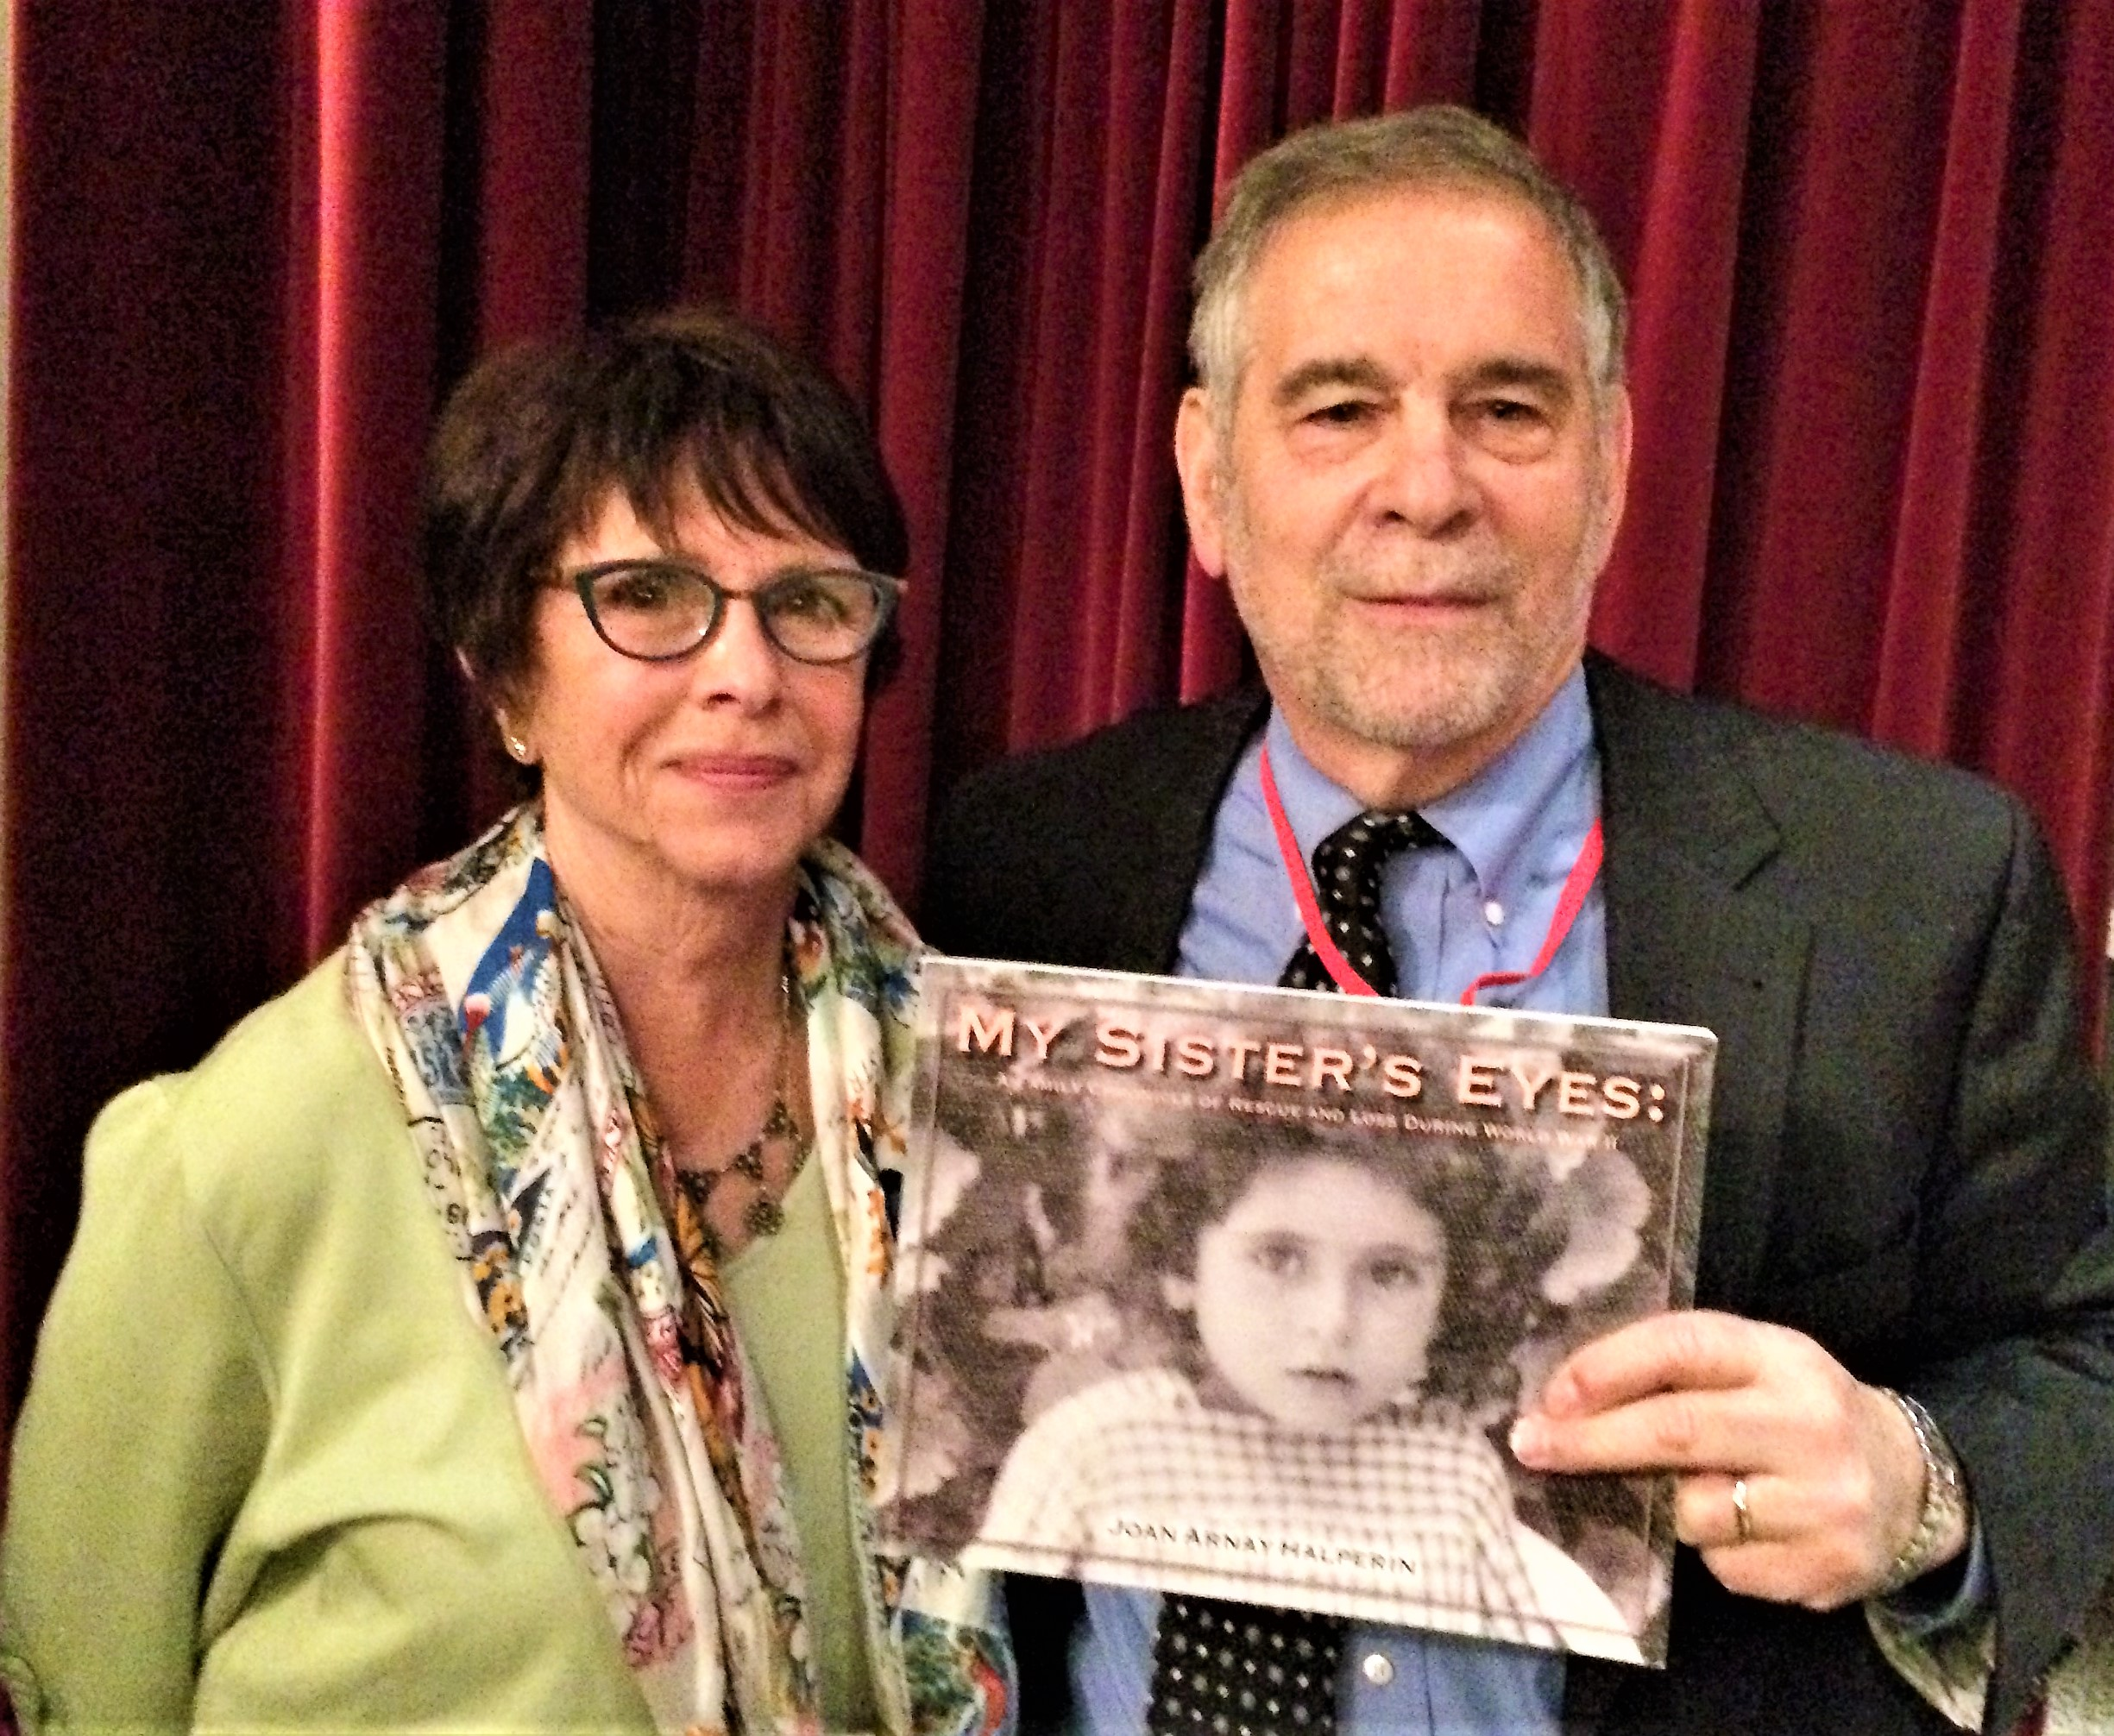 """Dr. Michael Berenbaum  is on the Sousa Mendes Advisory Council and was the first scholar to bless   My Sister's Eyes   with these kind words: """"My Sister's Eyes is a charming work written with precision and passion. It tells the story of the Krakowiak family from their prosperous life in Poland and Belgium through the Nazi onslaught and their perilous flight to freedom. The story unfolds so graciously that one does not quite realize its power as we experience the world before in its elegance, the descent into hell, the struggle to find a way out of Europe, the moral heroism of the Portuguese Consul in Bordeaux and then their escape from the inferno and their journey to a new world and a new life. And just as they are about to reach safety, they experience a tragedy – and later freedom and stability, birth and rebirth. The brevity of the work intensifies the depth of the journey, the words that are written and what cannot be written."""" —Michael Berenbaum, Director, Sigi Ziering Institute, Professor of Jewish Studies, American Jewish University"""